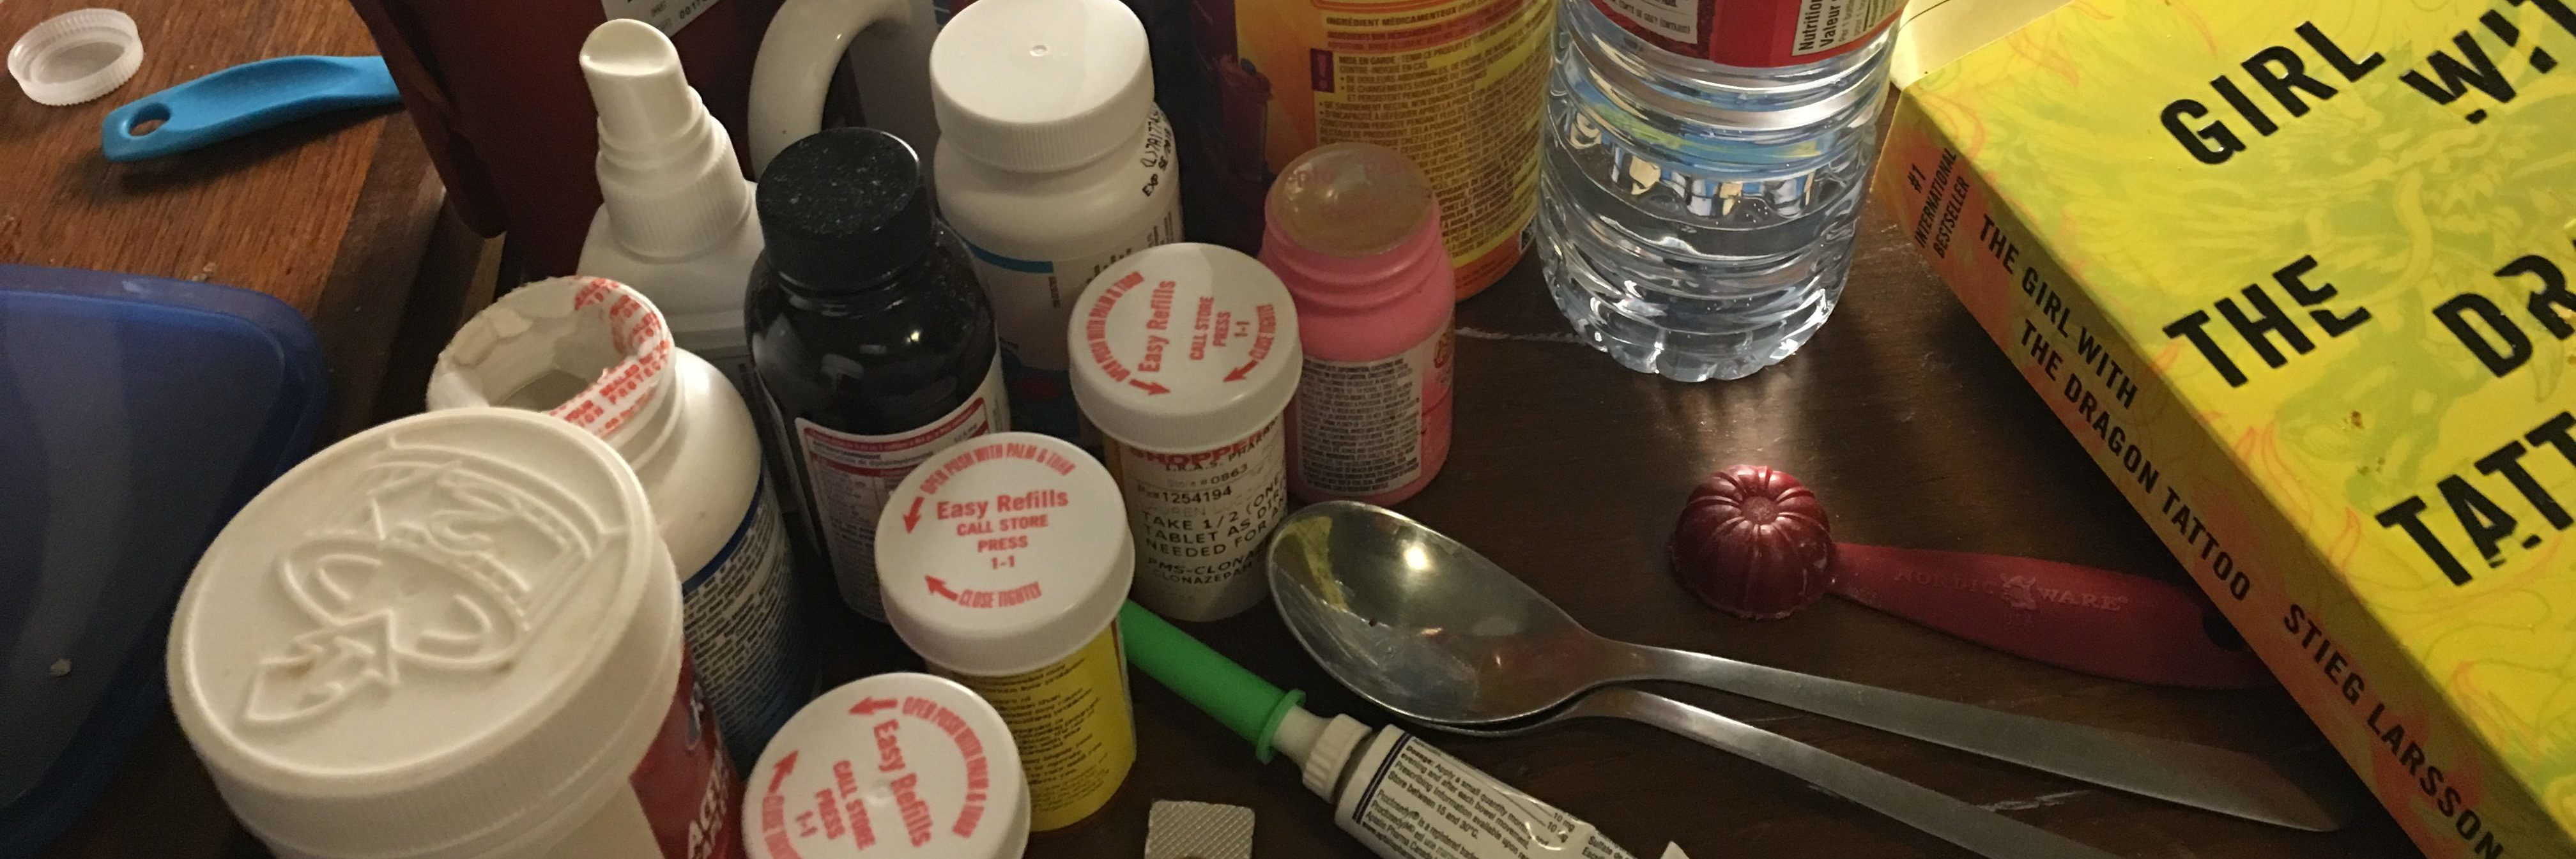 medications on bedside table